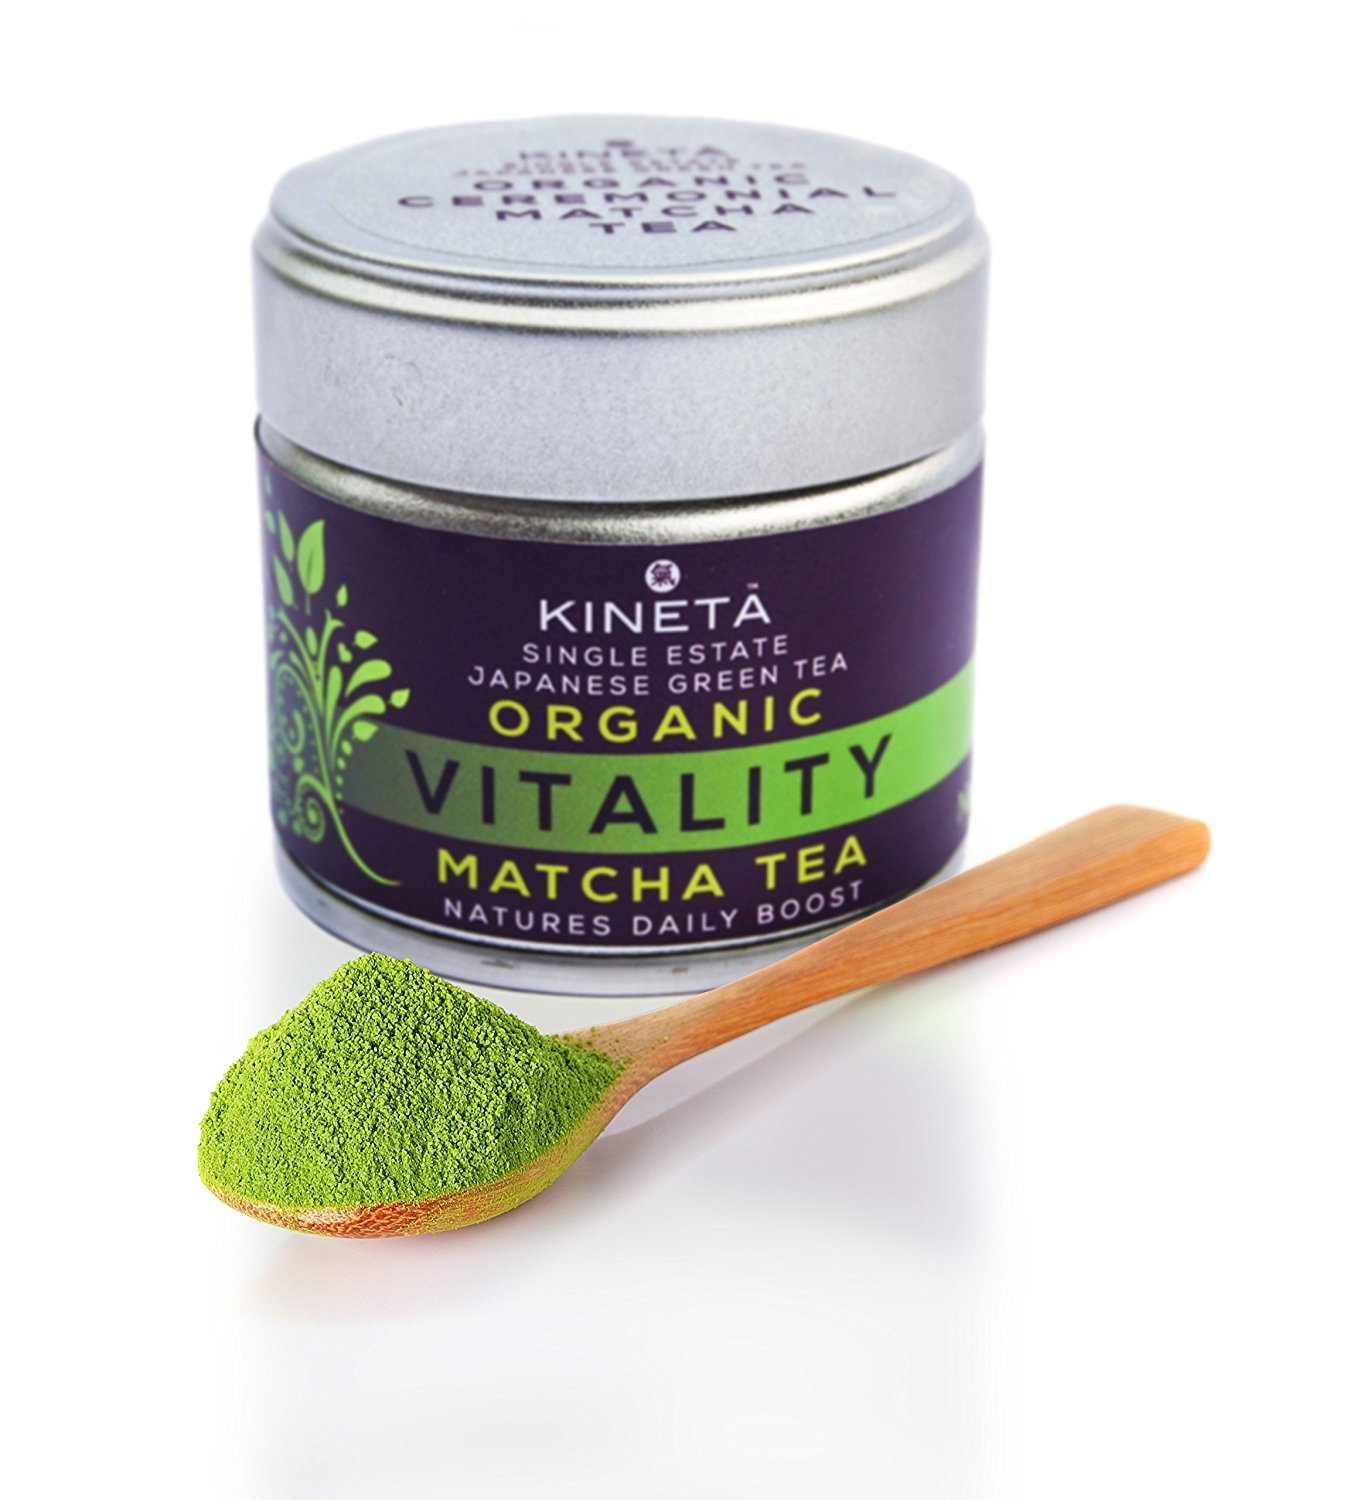 *** NEW*** Organic Vitality Matcha Green Tea by Kineta TM. Ceremonial Grade A* Finest Japanese Green Tea Powder. Family Farm. Tea Masters Choice